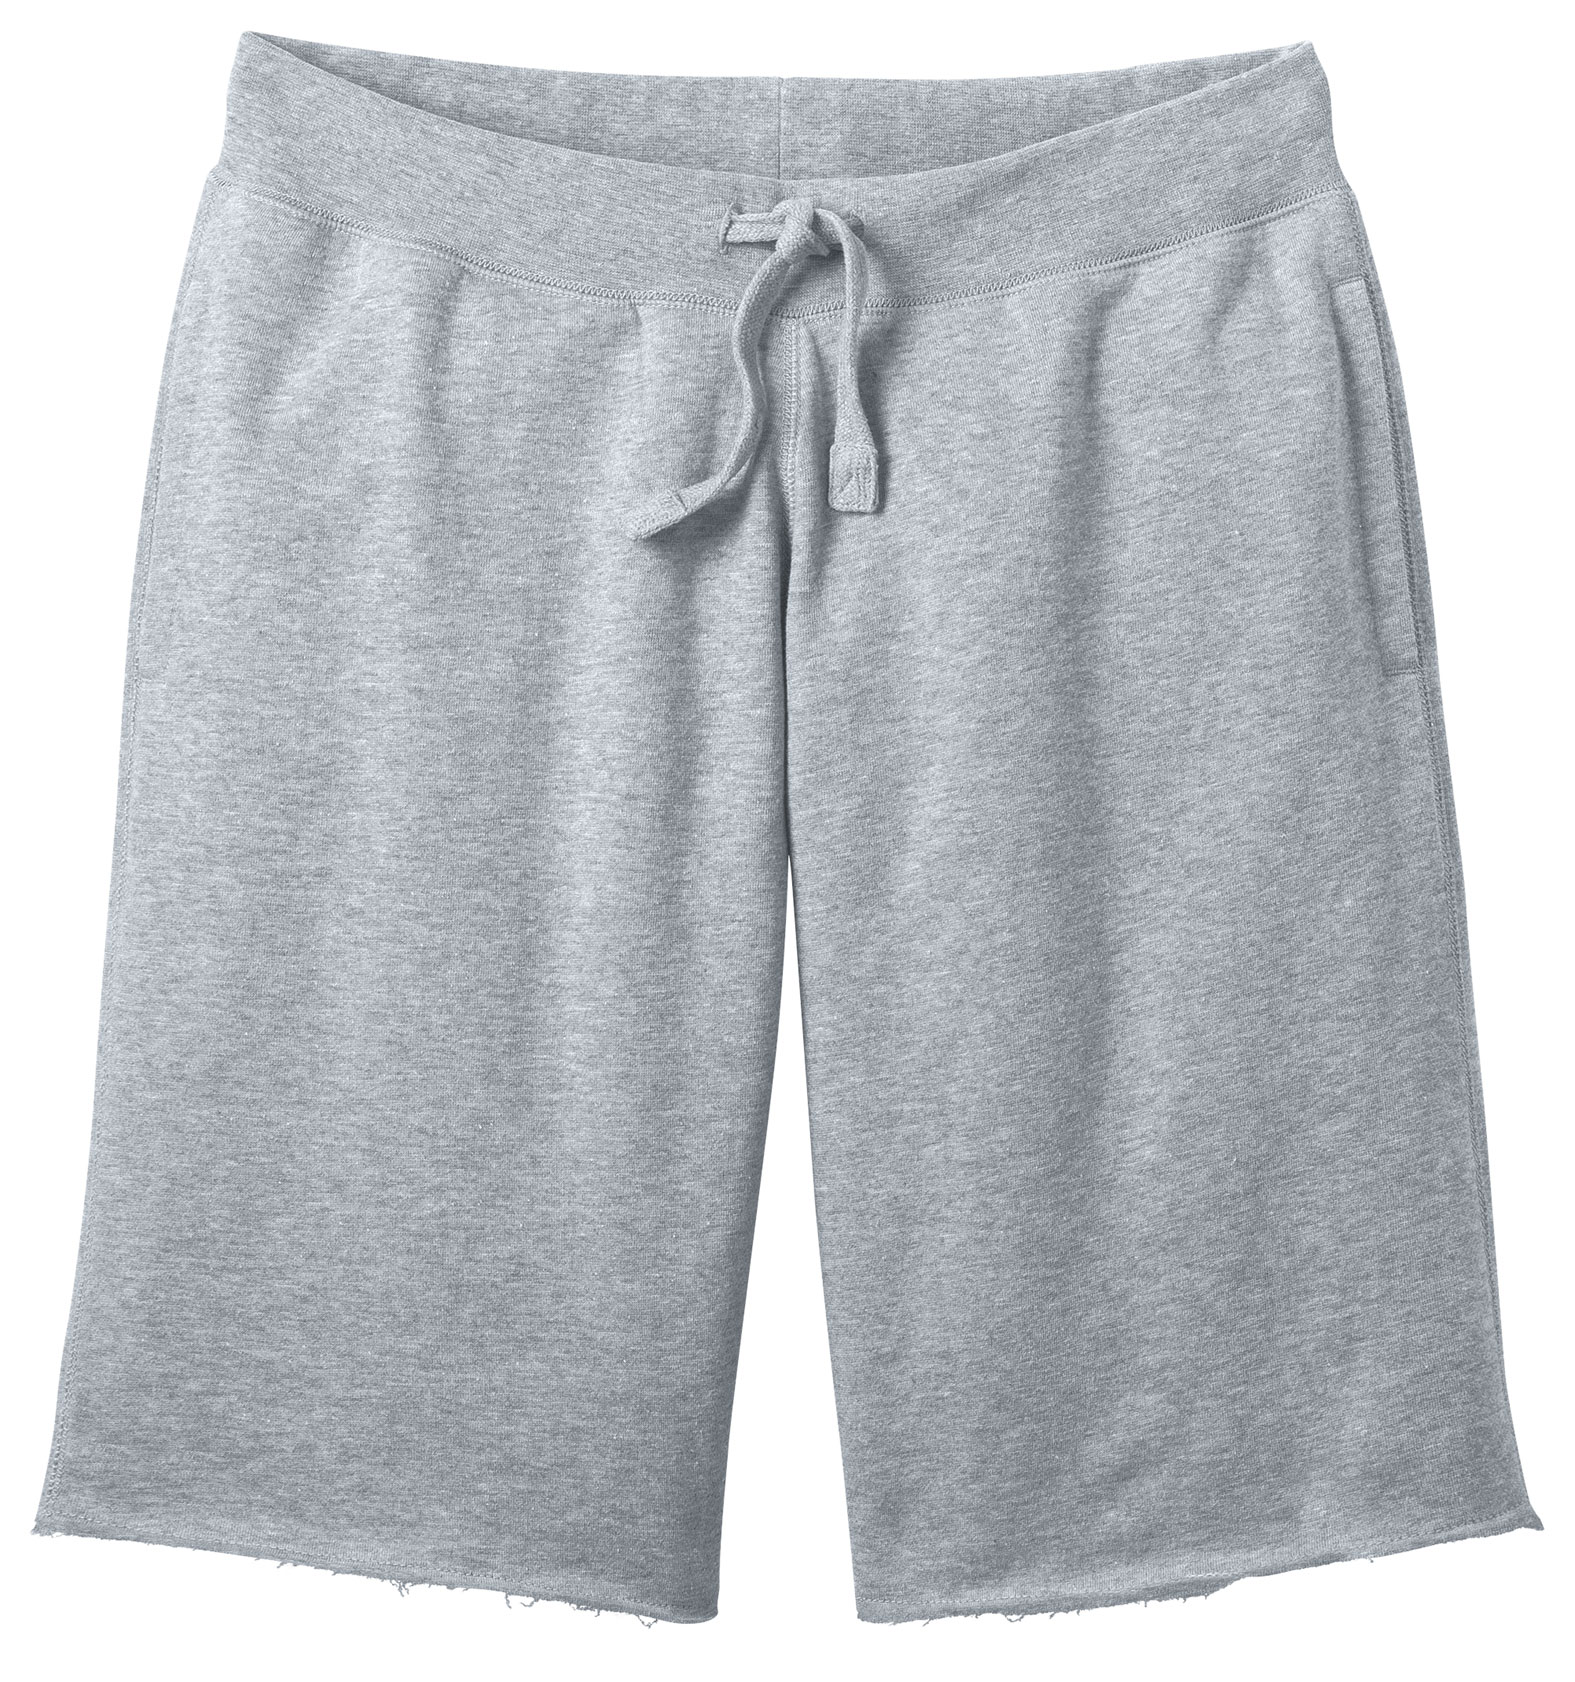 Young Mens Fleece Shorts